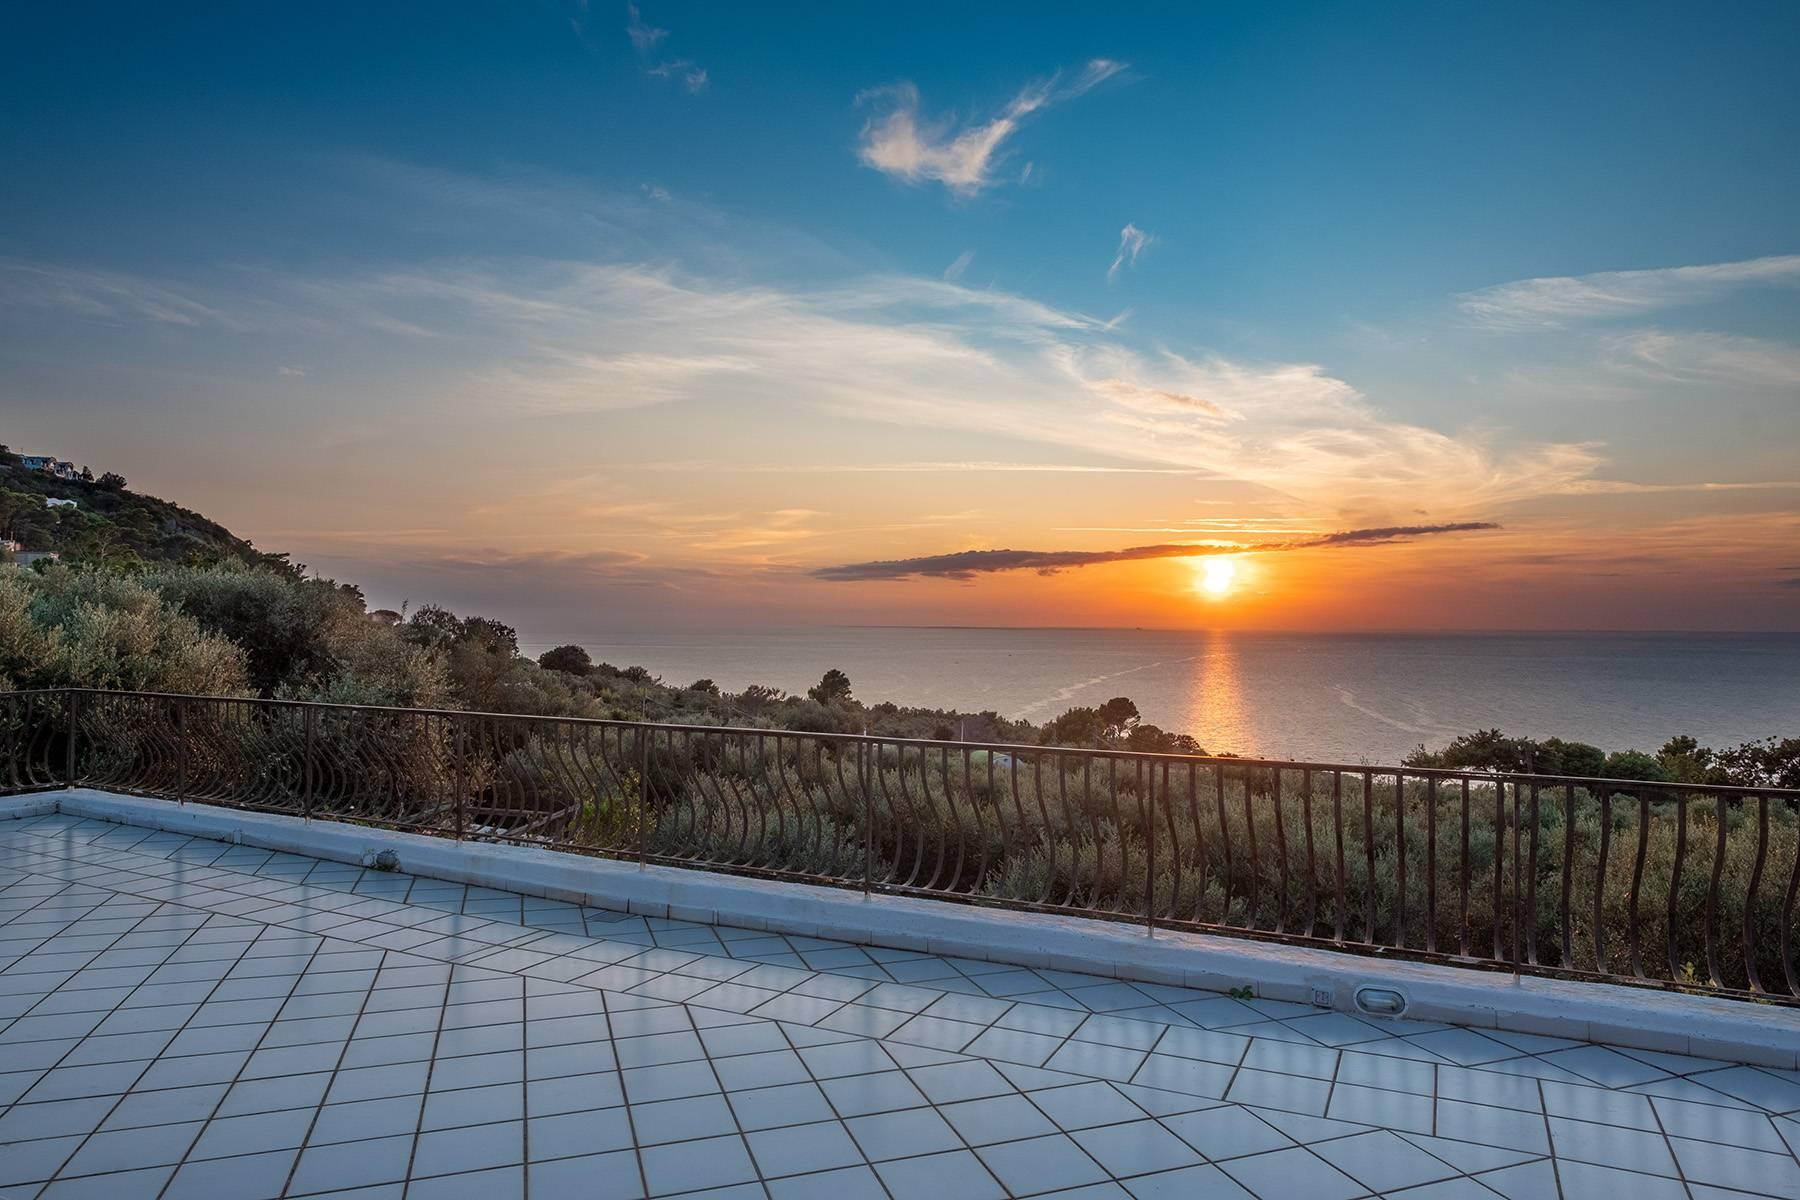 Charming villa with olive grove and swimming pool overlooking the sea - 1